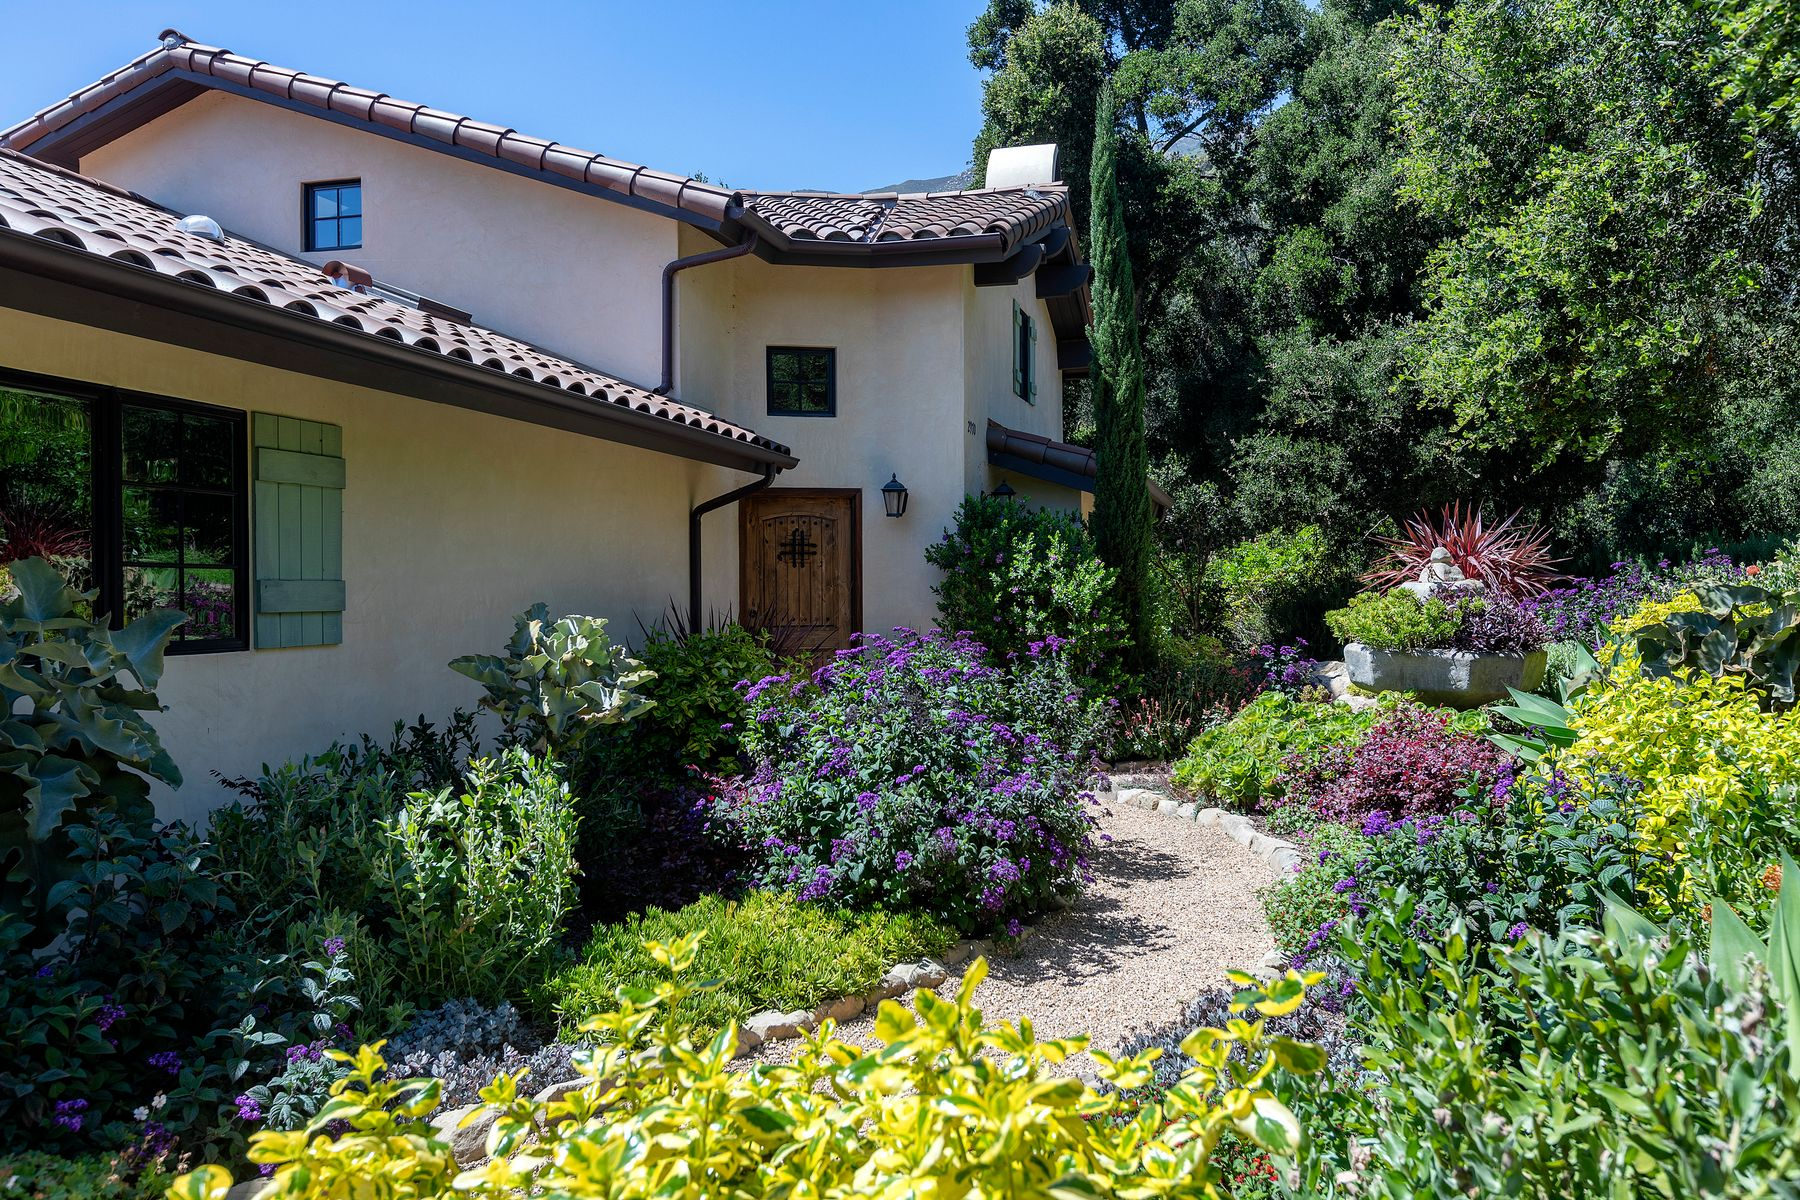 Property for Sale at Serene Montecito Retreat 2970 Hidden Valley Lane Montecito, California 93108 United States